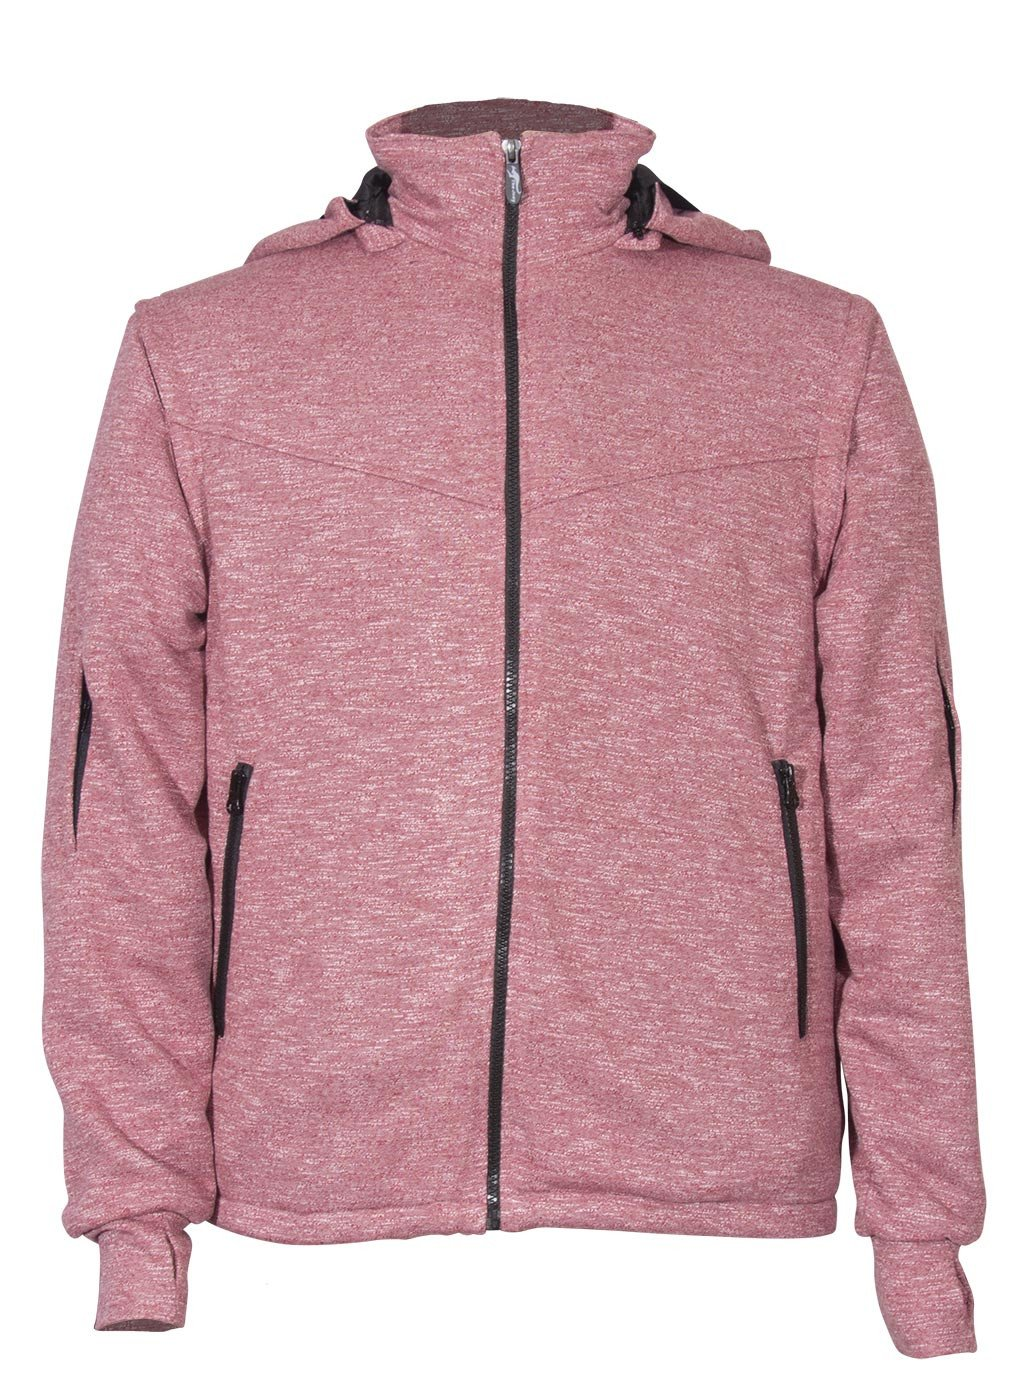 Red Joey Travel Hoodie | Global Travel Clothings